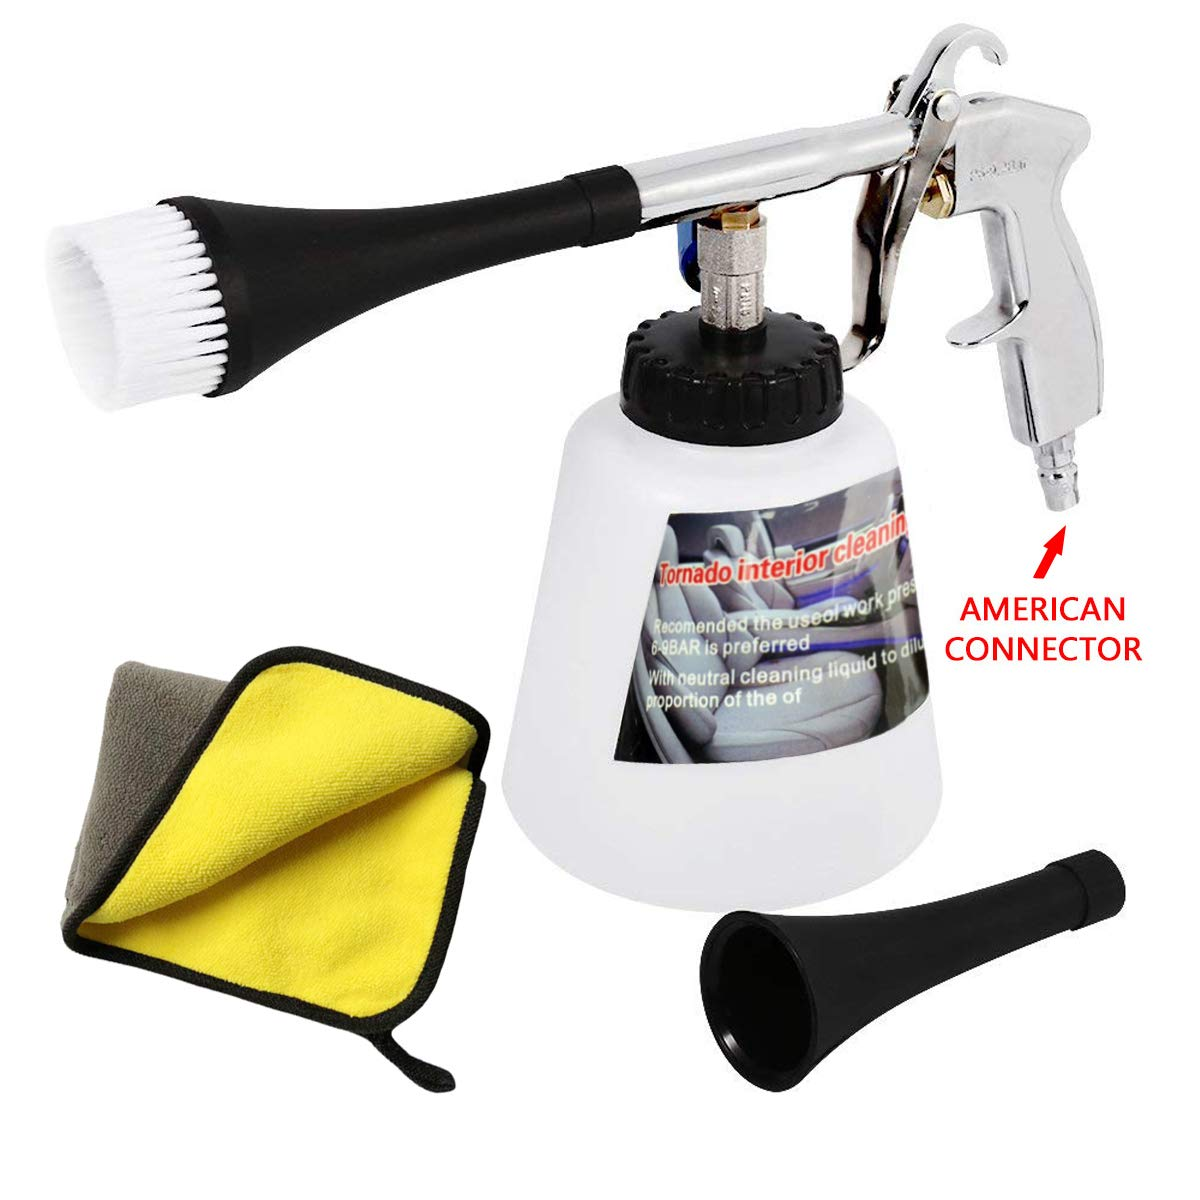 Car Cleaning Gun High Pressure Cleaning Tool Tornador Interior Pulse Air Cleaner Gun Care Blow Gun Inside Car Cleaning Unit Plastic Nozzle With US Connector